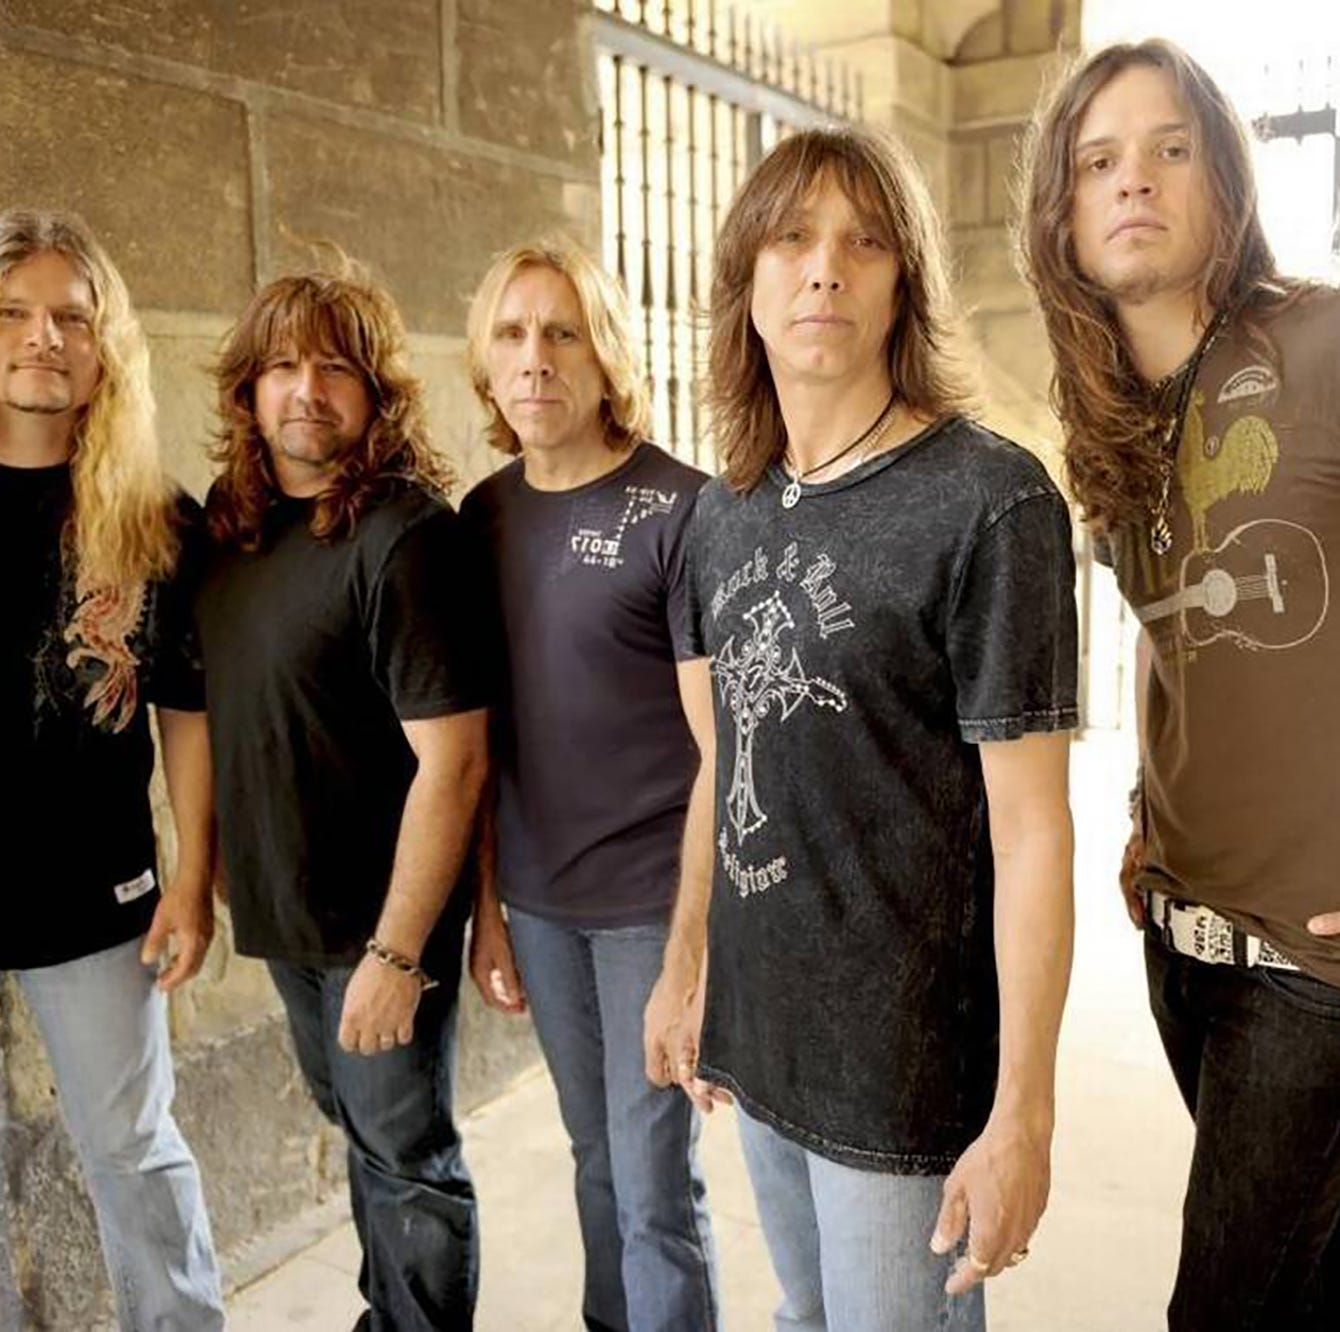 York Fair's 'Triple Play Tuesday' to feature three bands, including Tesla, in one show